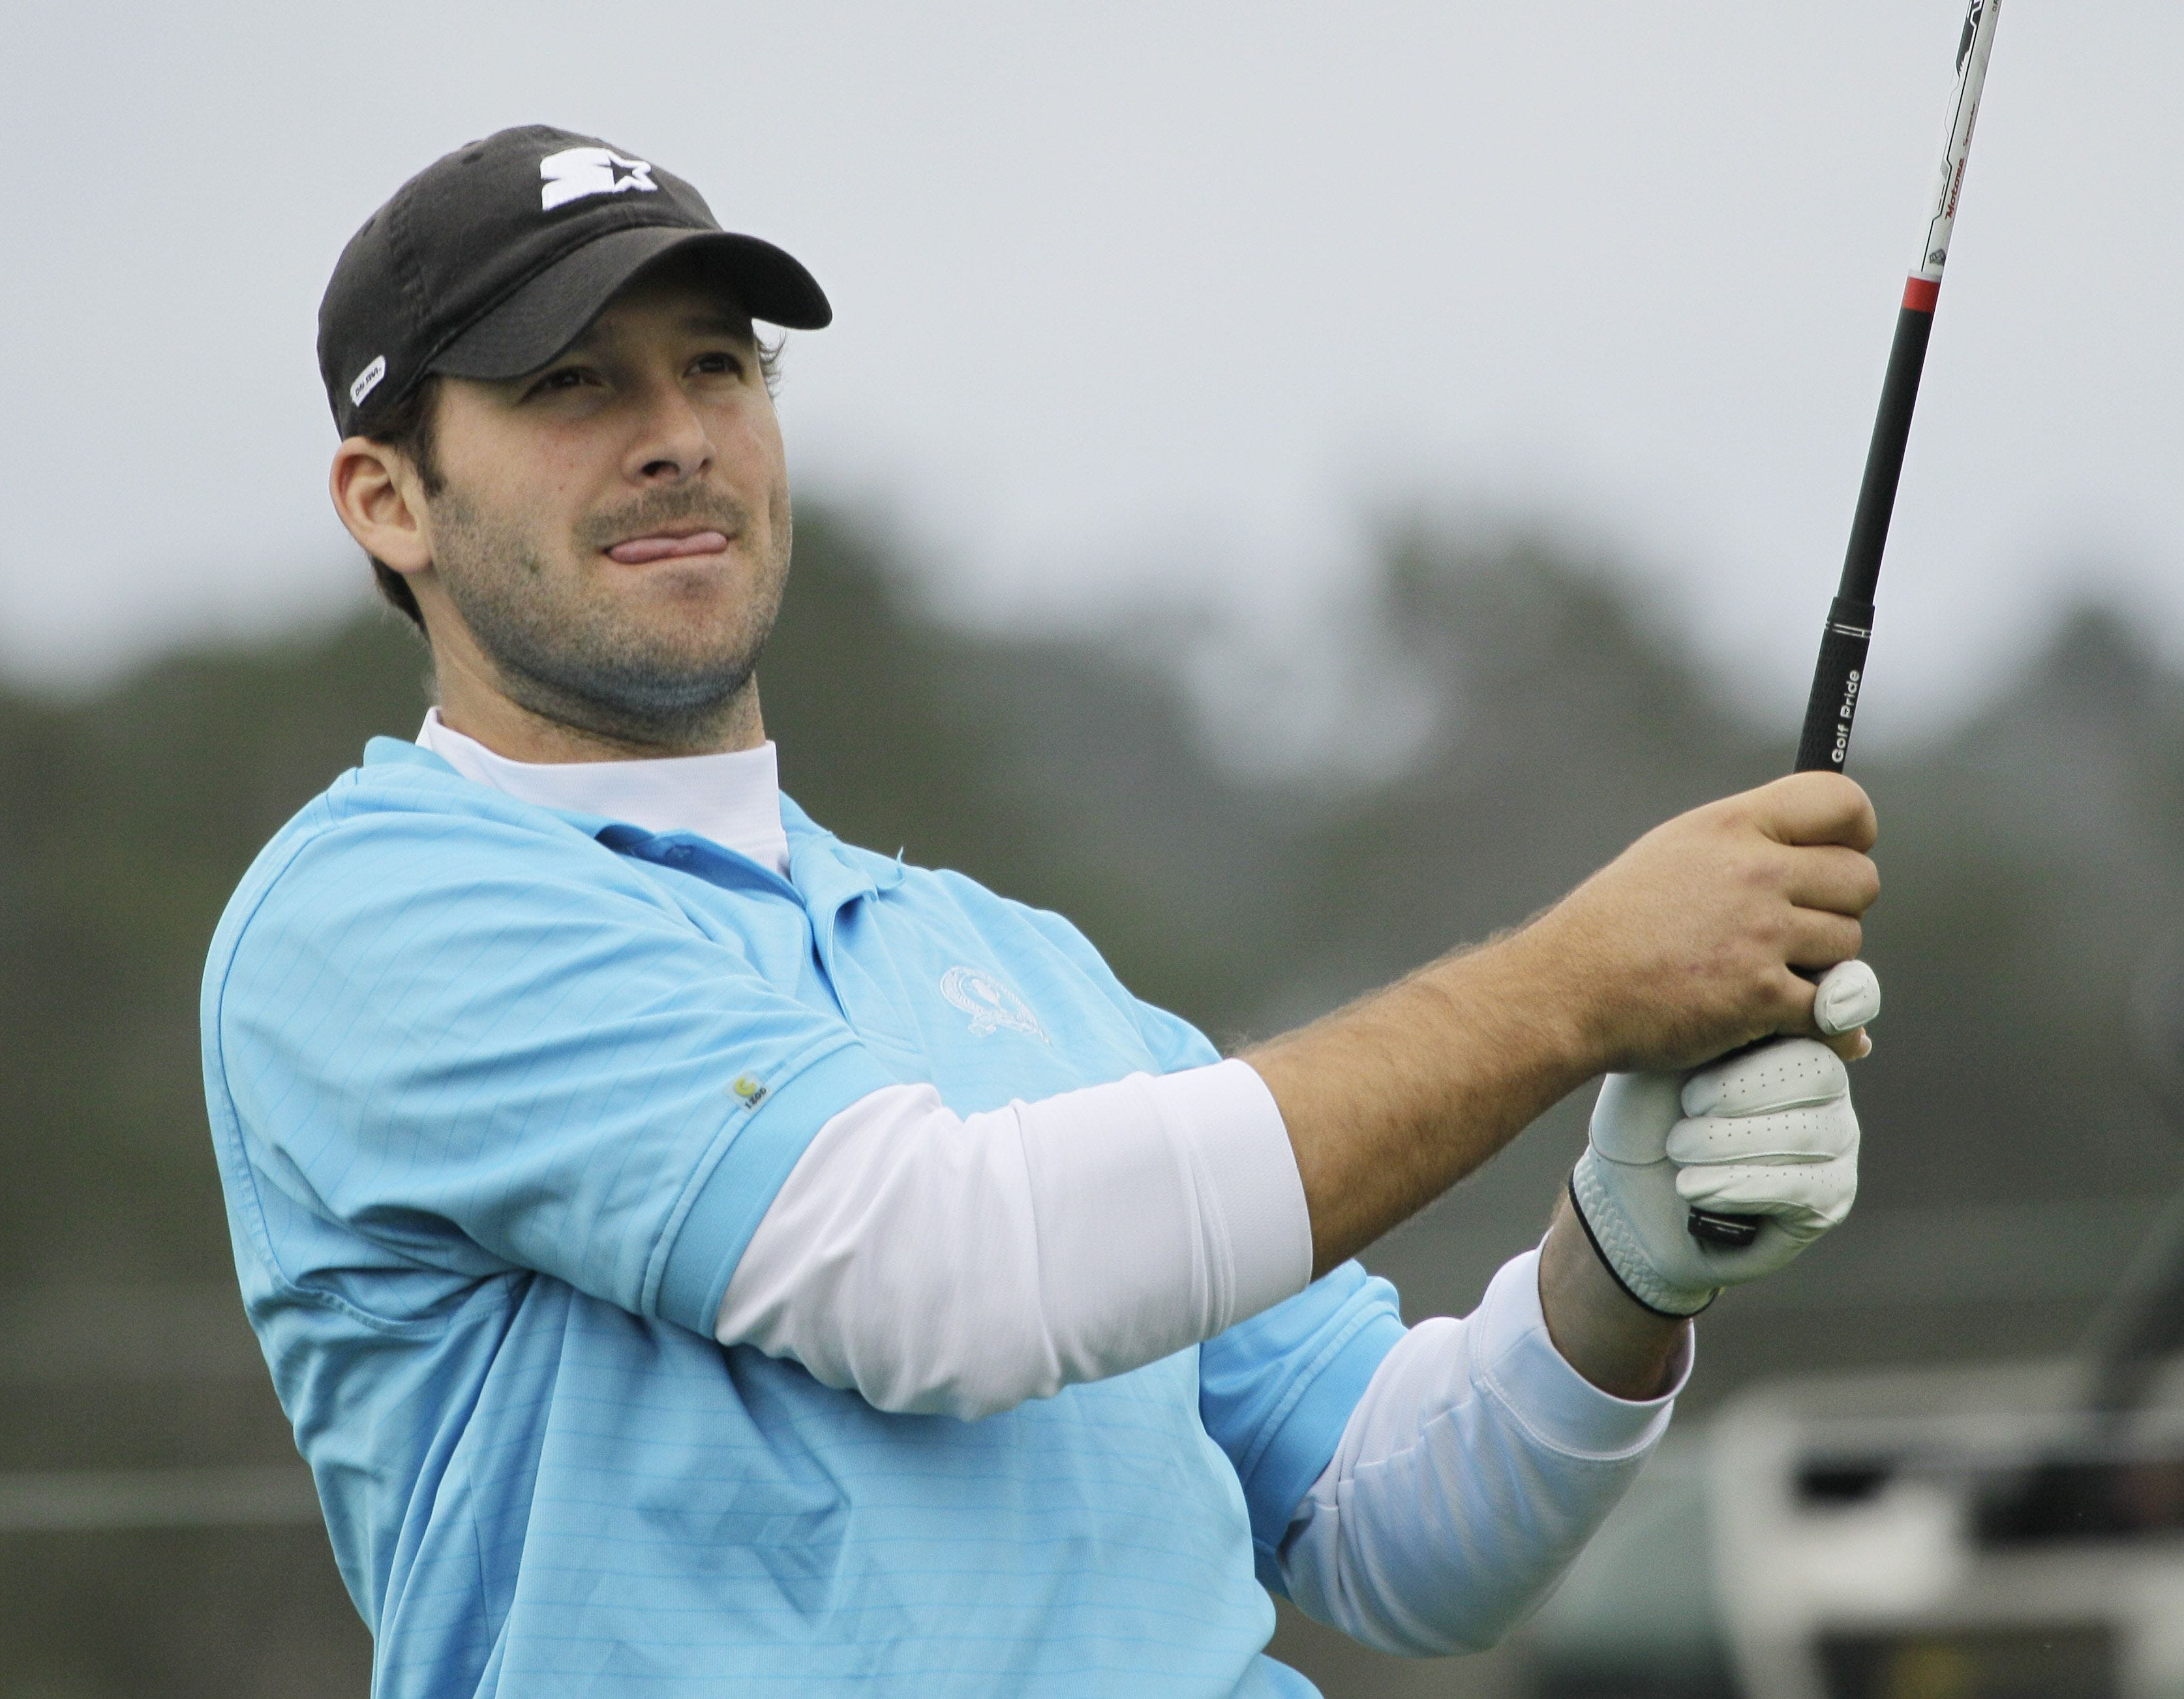 Tony Romo to compete in U.S. Open qualifier on Monday